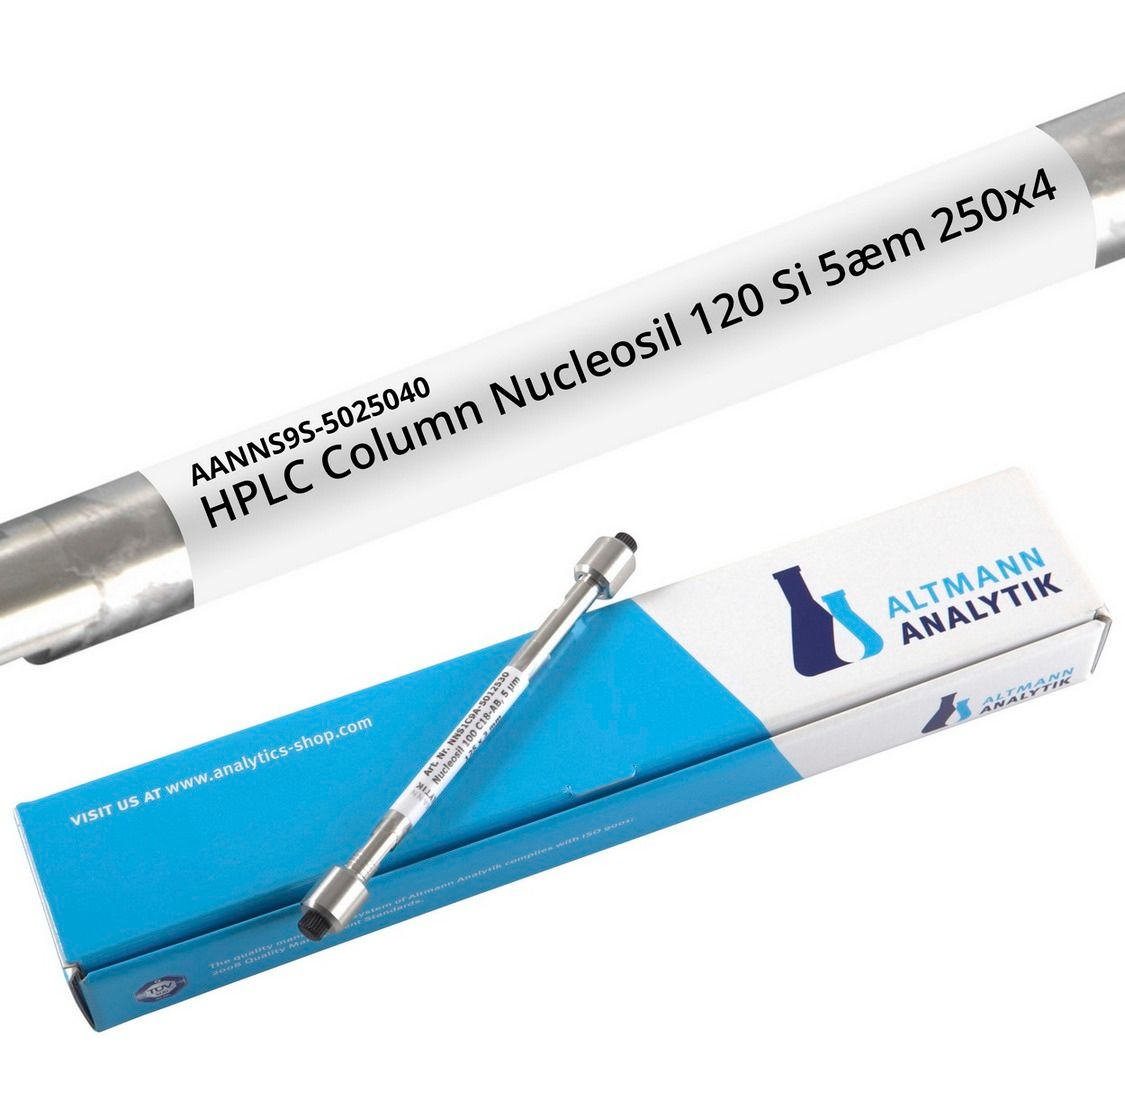 HPLC Column Nucleosil 120 Si 5µm 250x4 mm, 120A